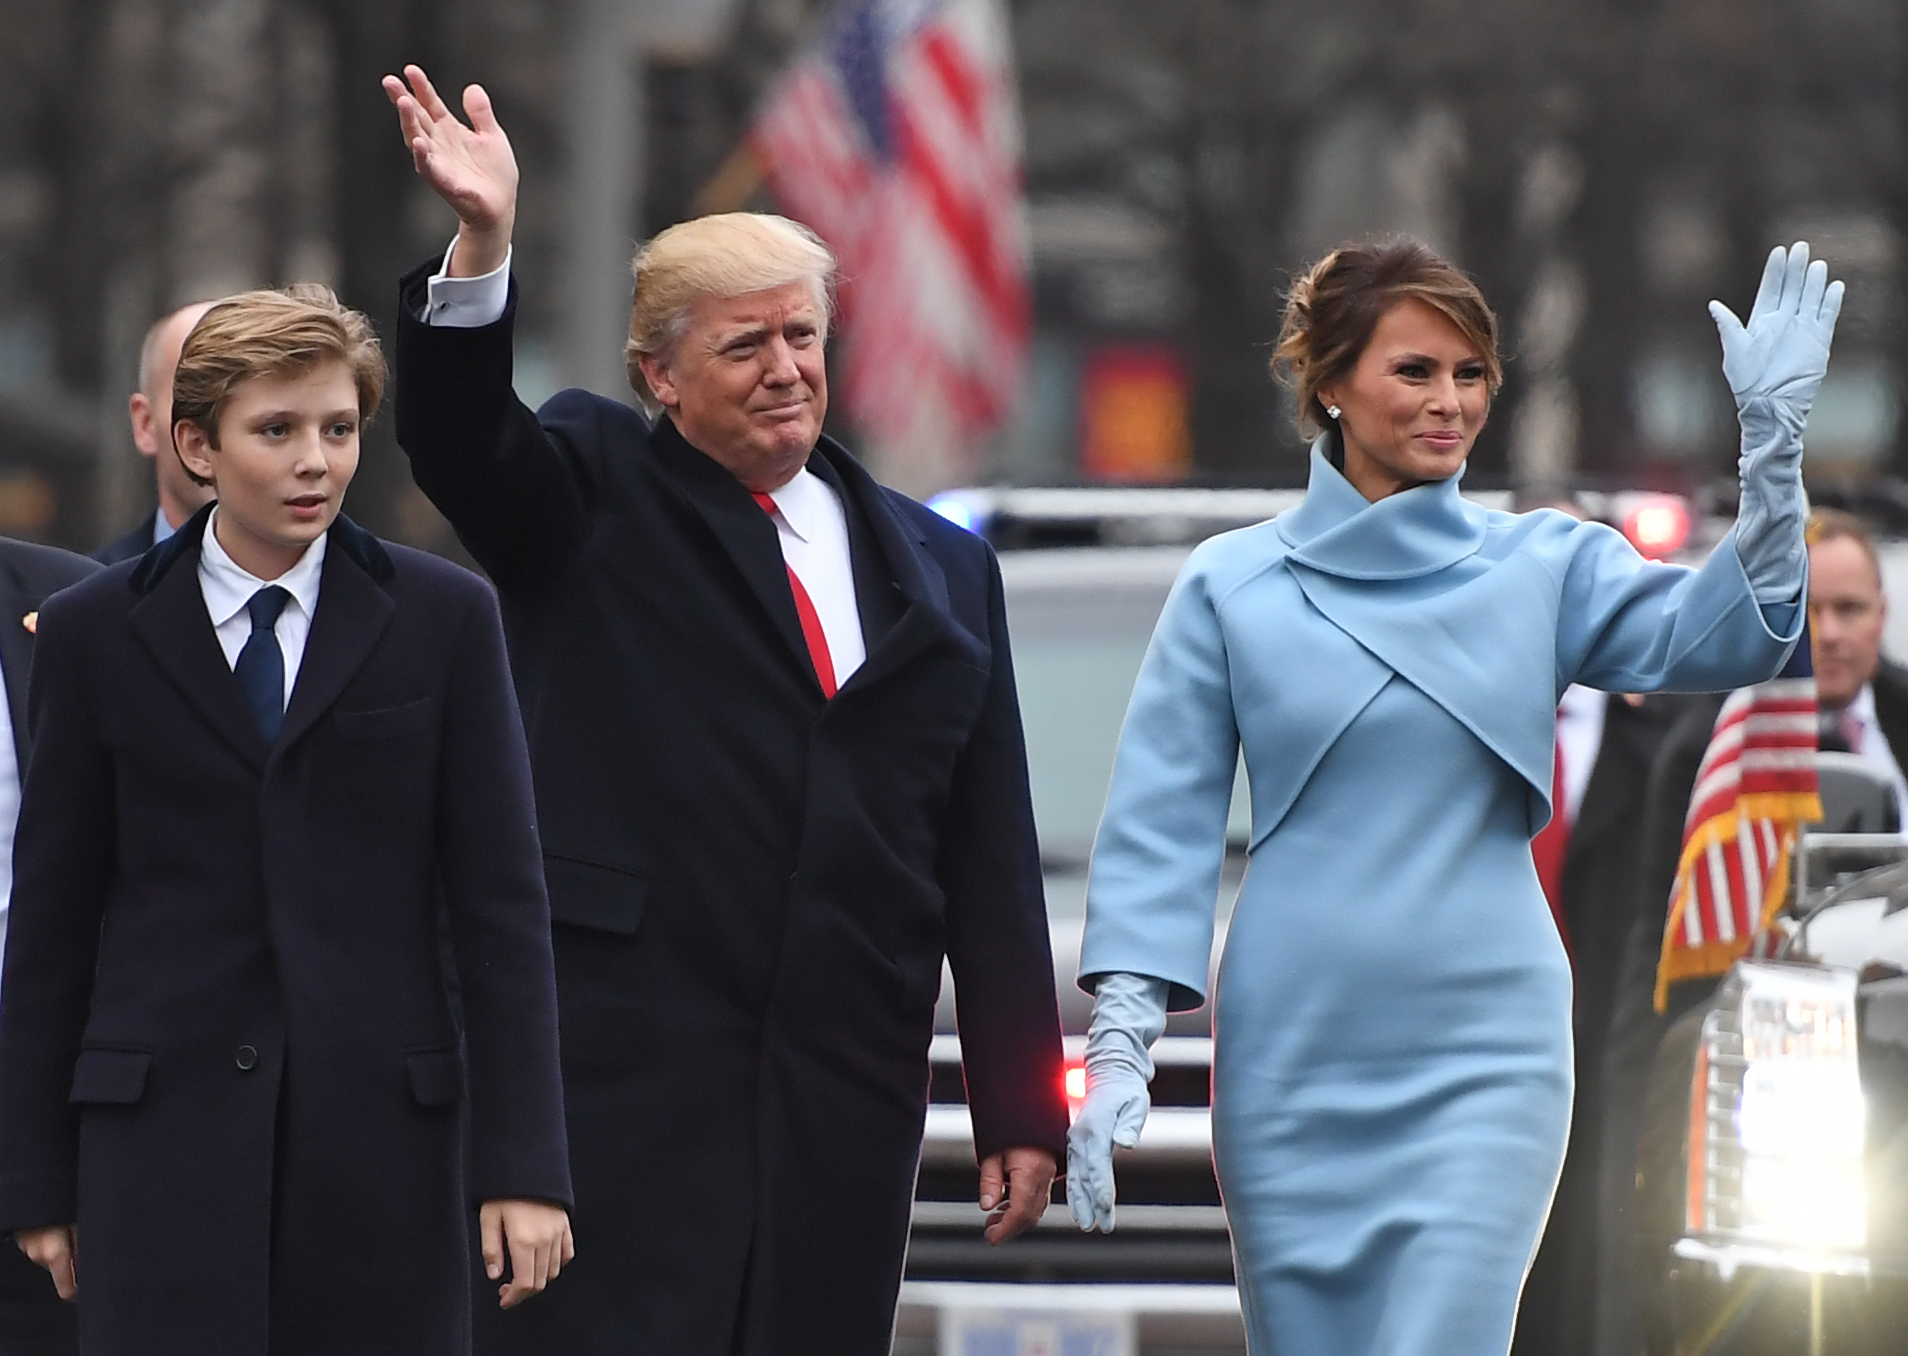 US President Donald Trump and First Lady Melania walk the inaugural parade route with son Barron on Pennsylvania Avenue in Washington, DC, on January 20, 2017 following swearing-in ceremonies on Capitol Hill earlier today.